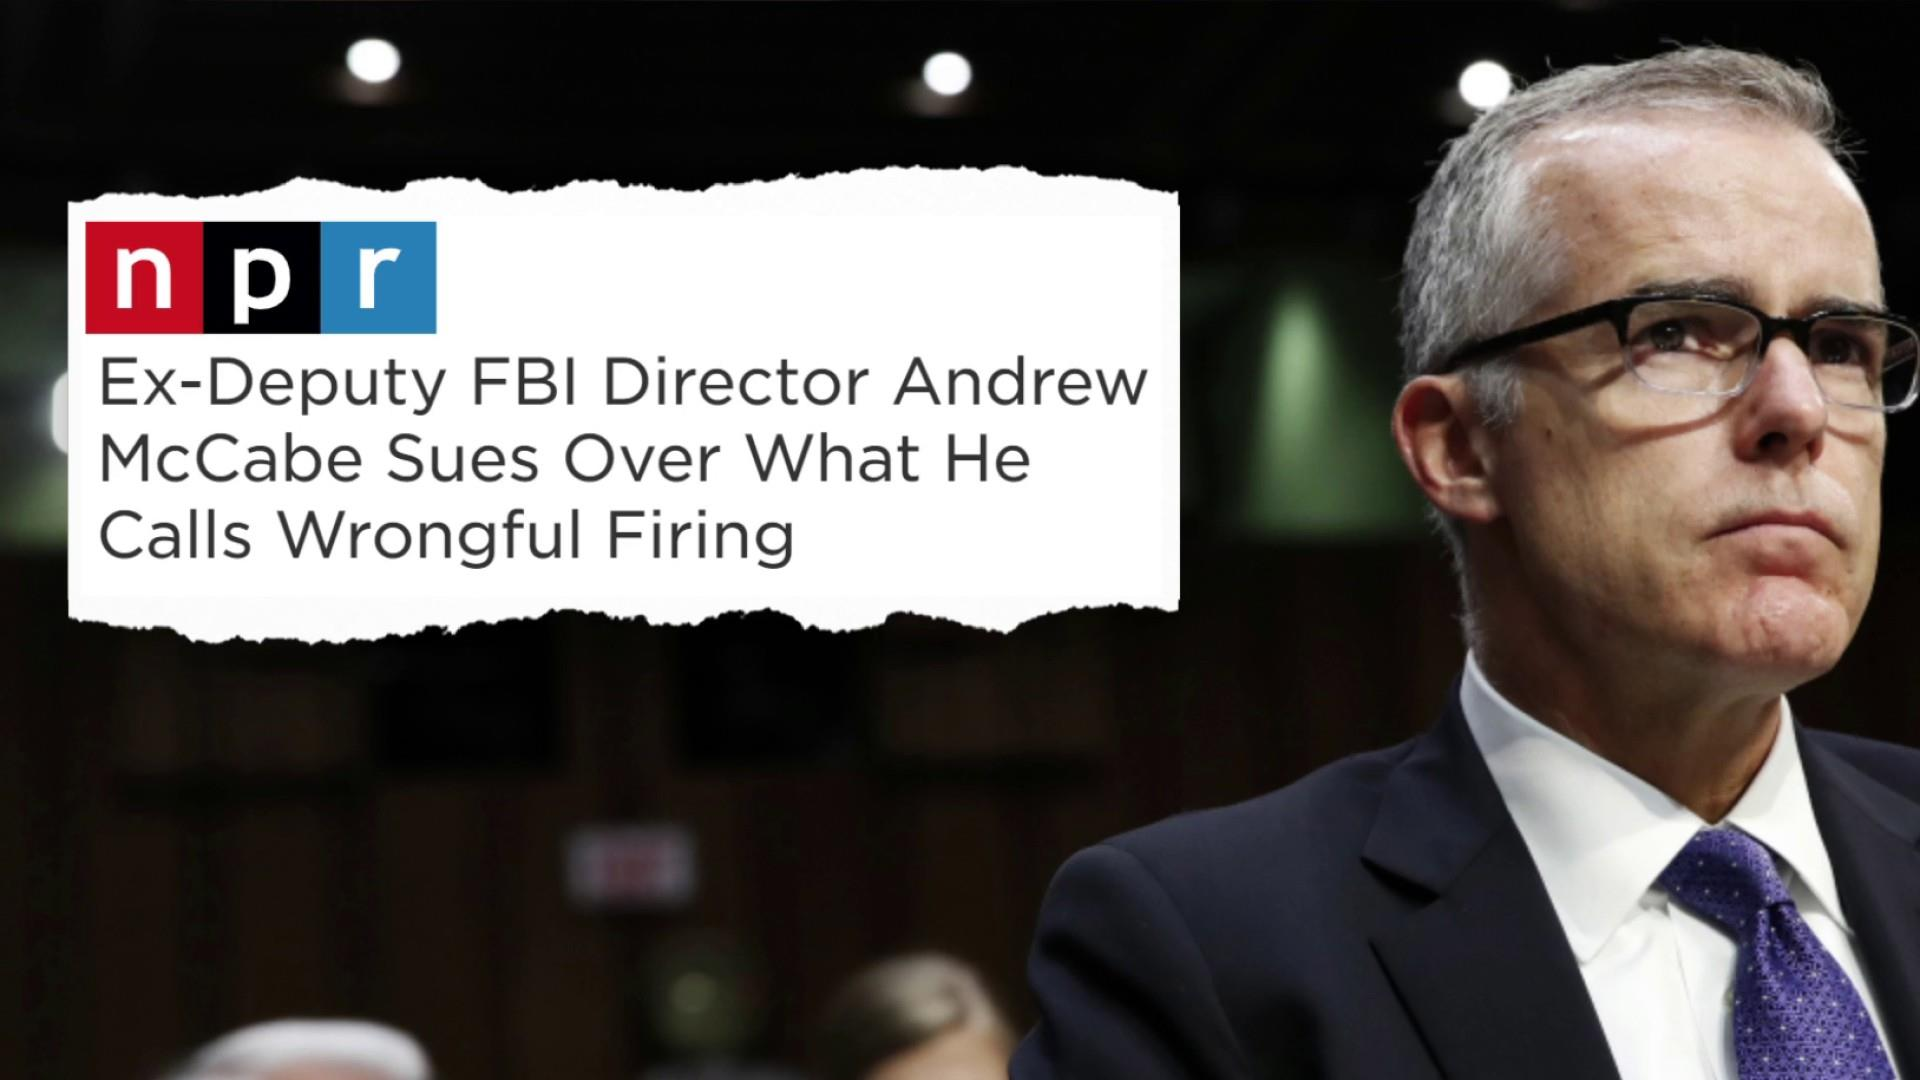 Fmr FBI official sues Trump for 'unlawful, unconstitutional' acts